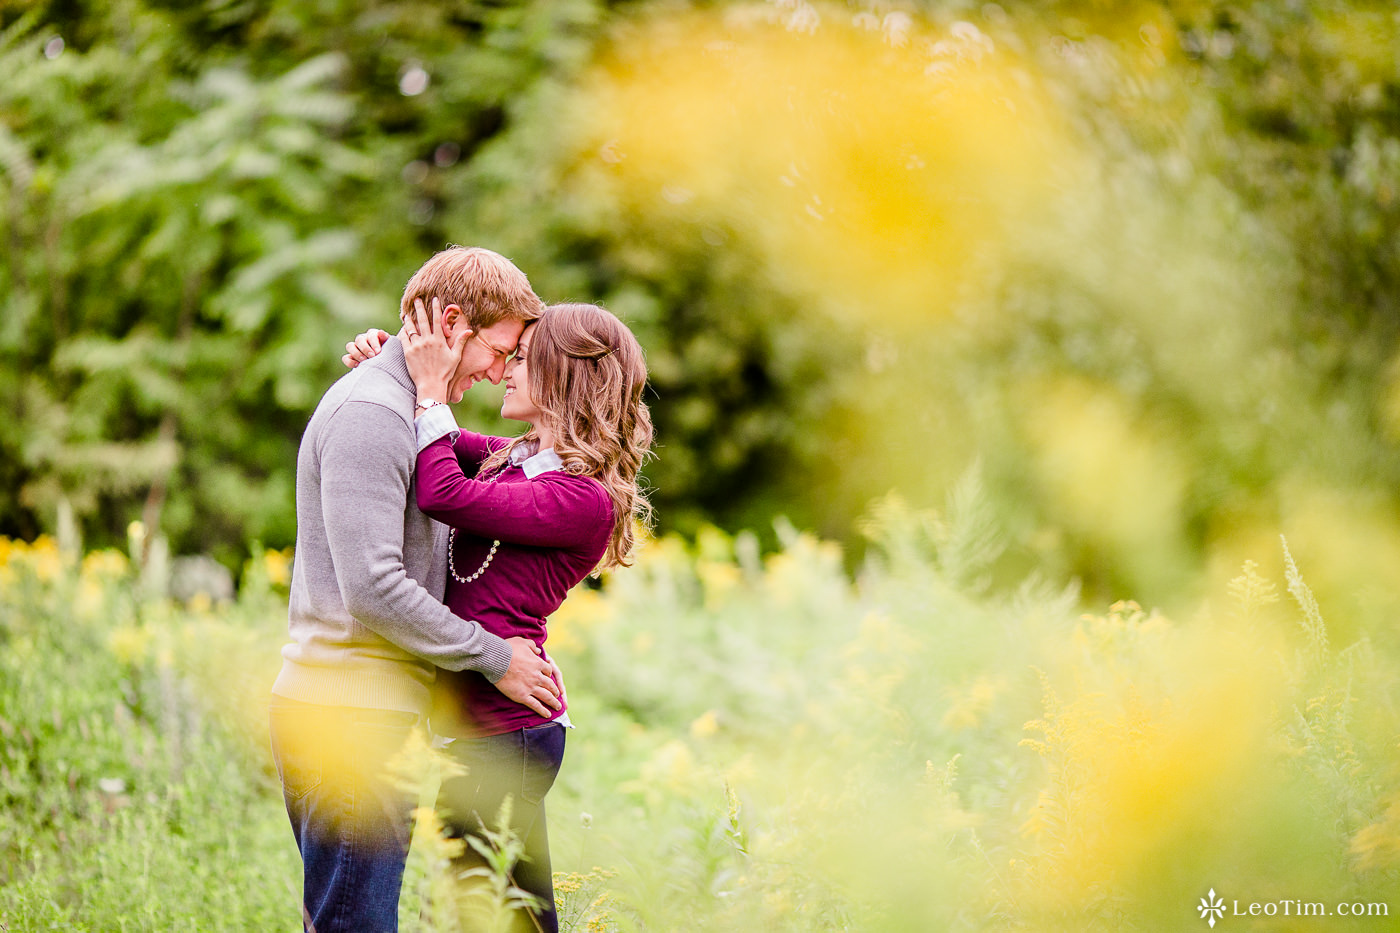 franklin-square-syracuse-engagement-photos-04.jpg